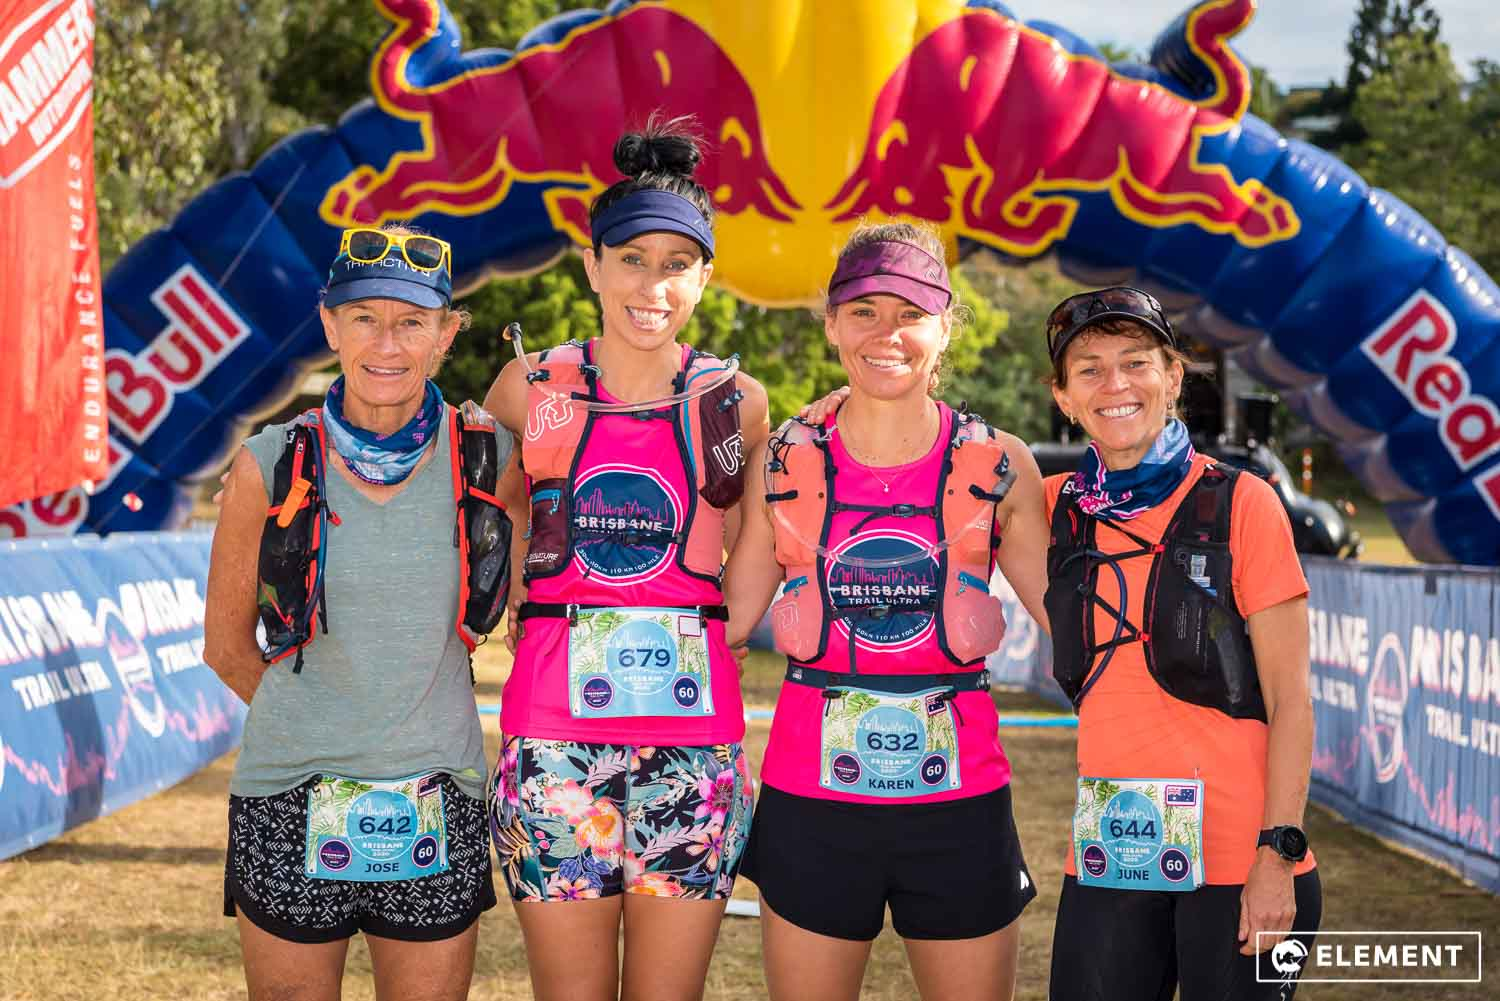 Four participants smiling at the start line of an event.